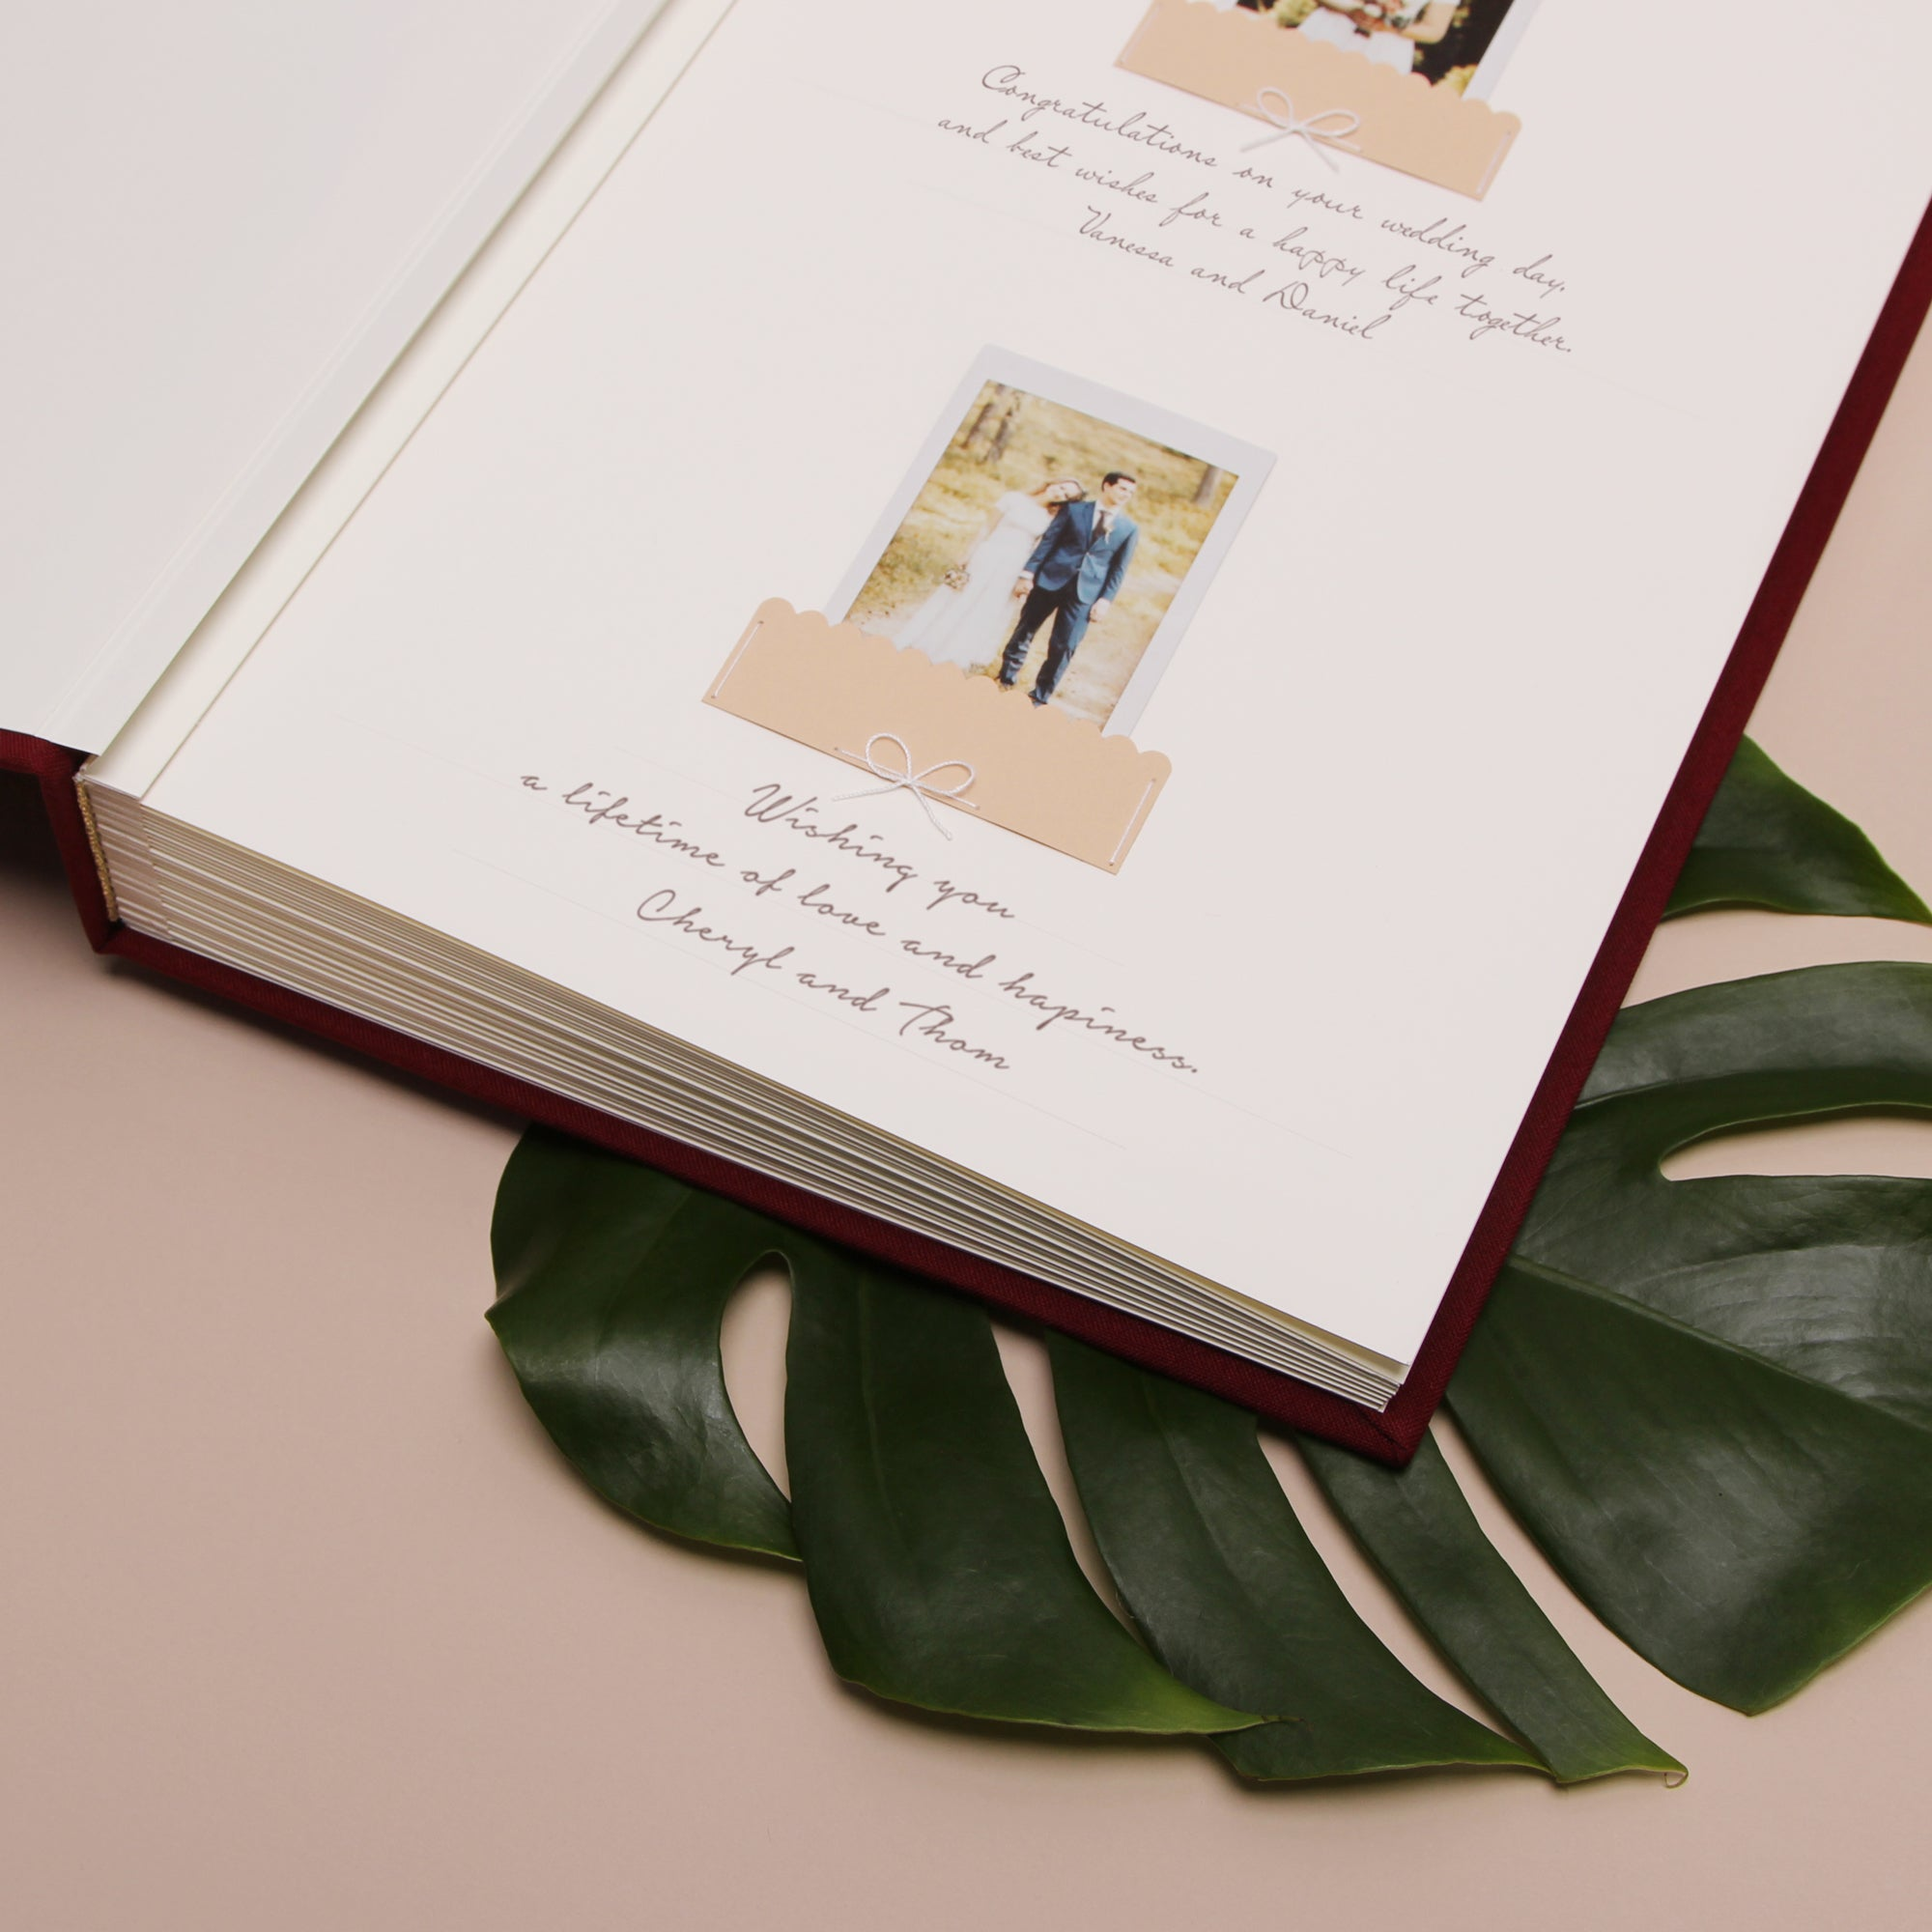 Classic Marsala Wedding Guest Book With Gold Lettering, Instax picture album, Birthday Album - by Liumy - Liumy